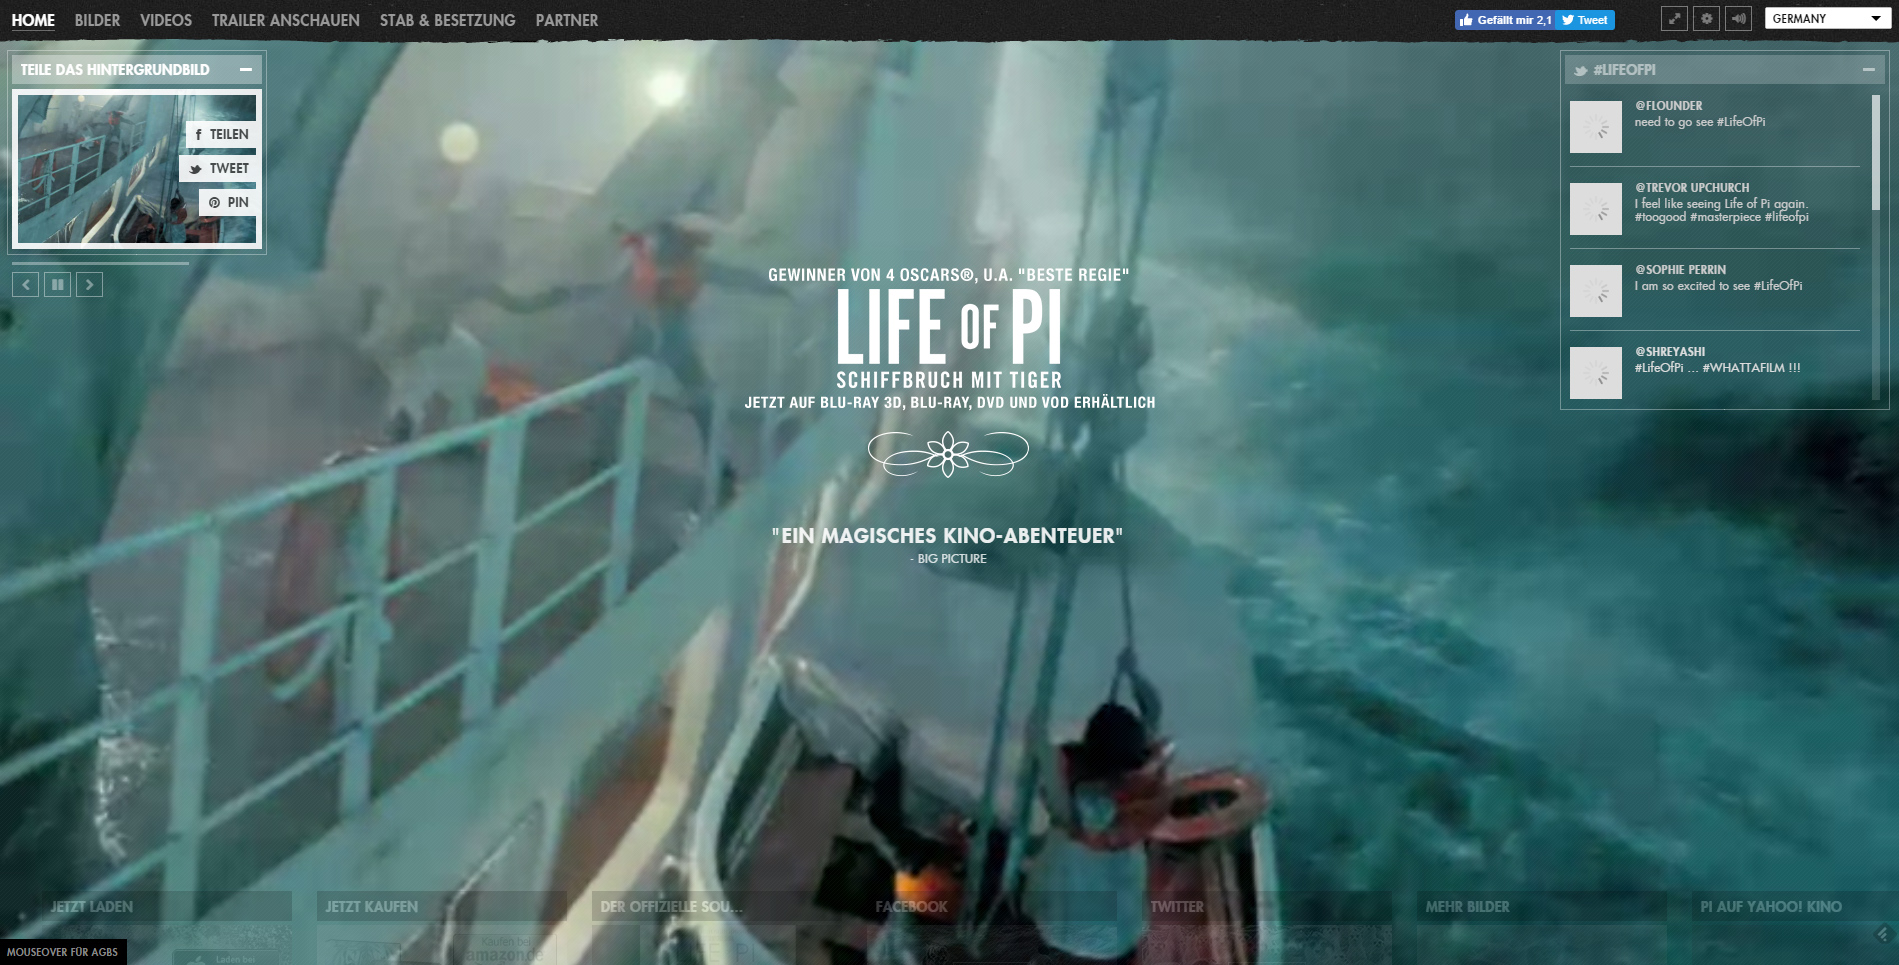 life-of-pie-website-screenshot capture vidéo marketing vidéo marketing en ligne